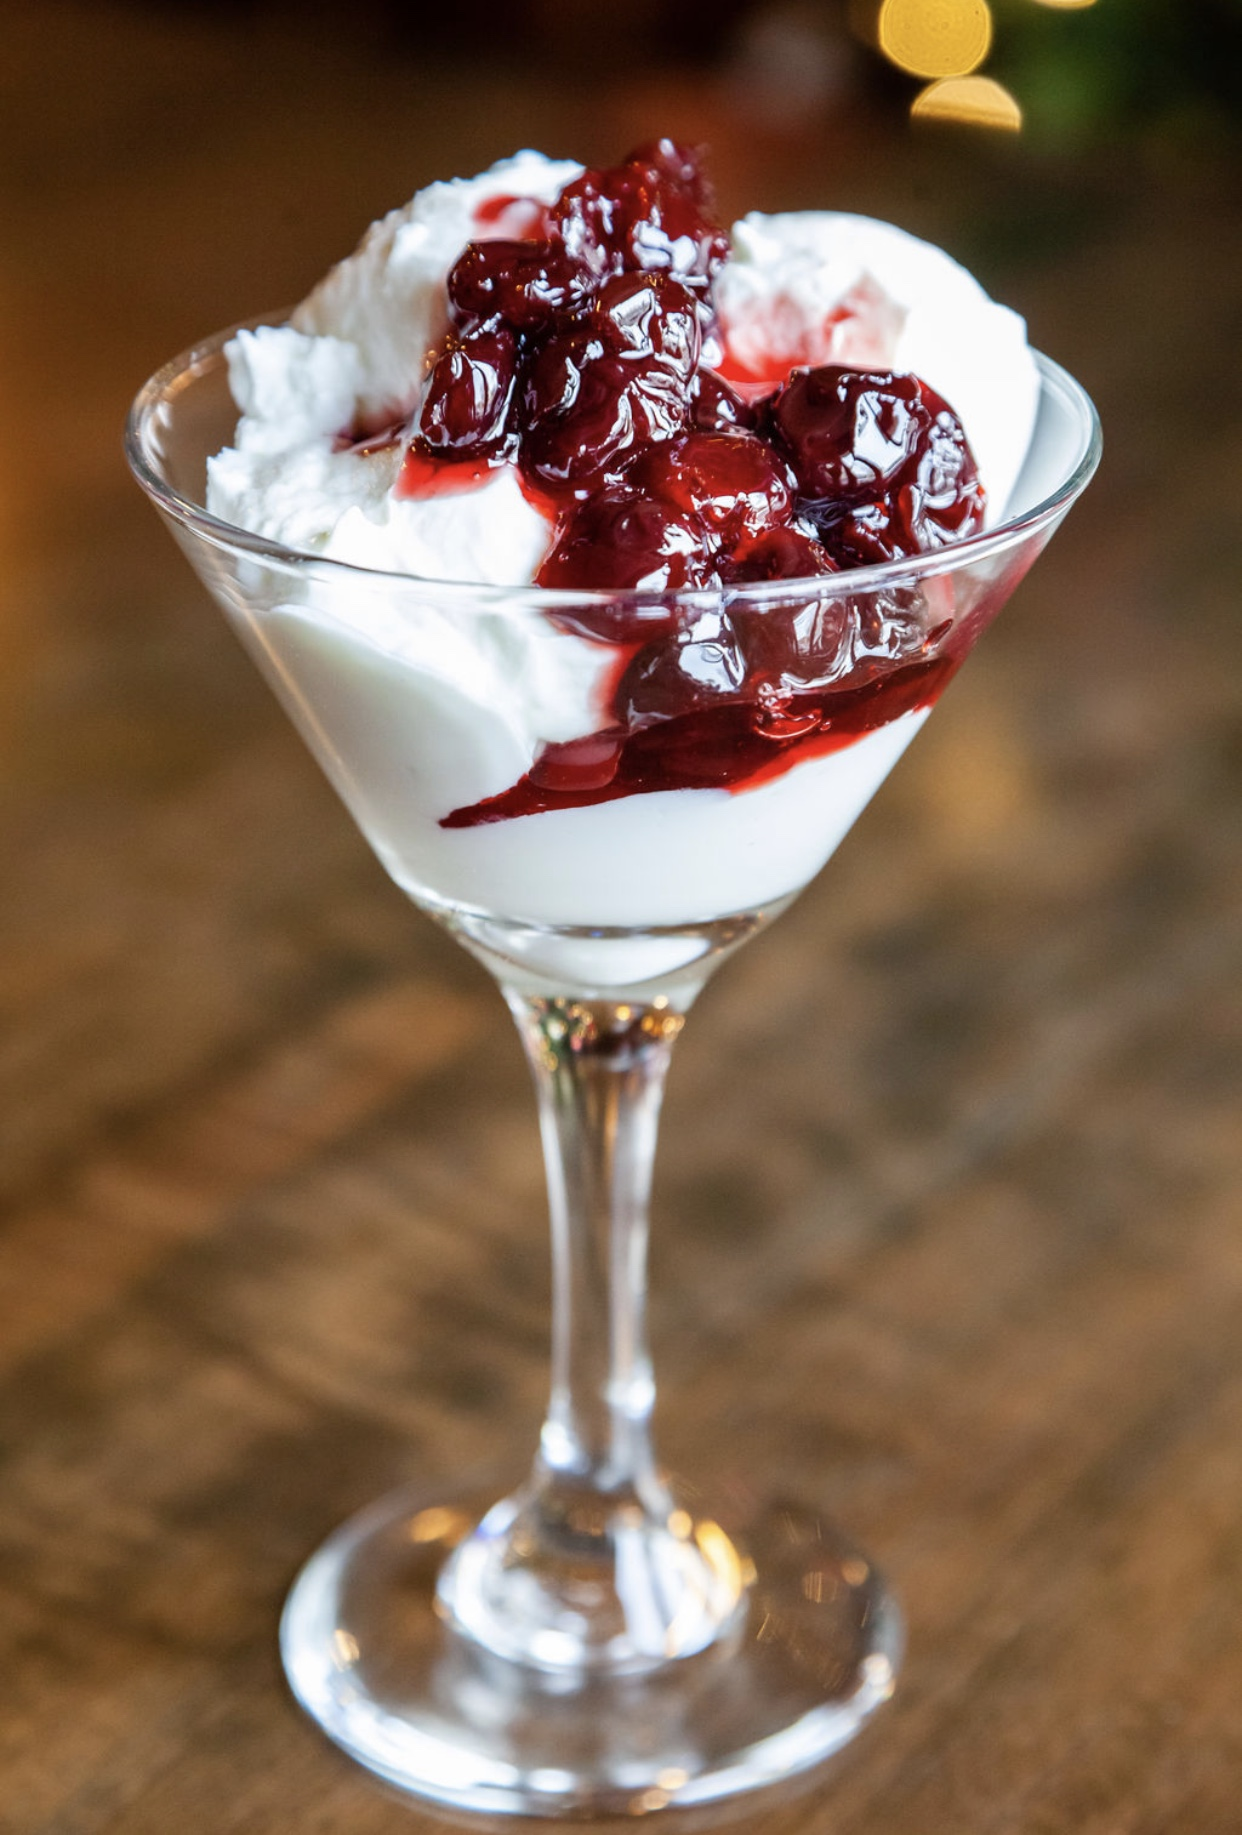 Greek Yogurt with Sour Cherry Preserves